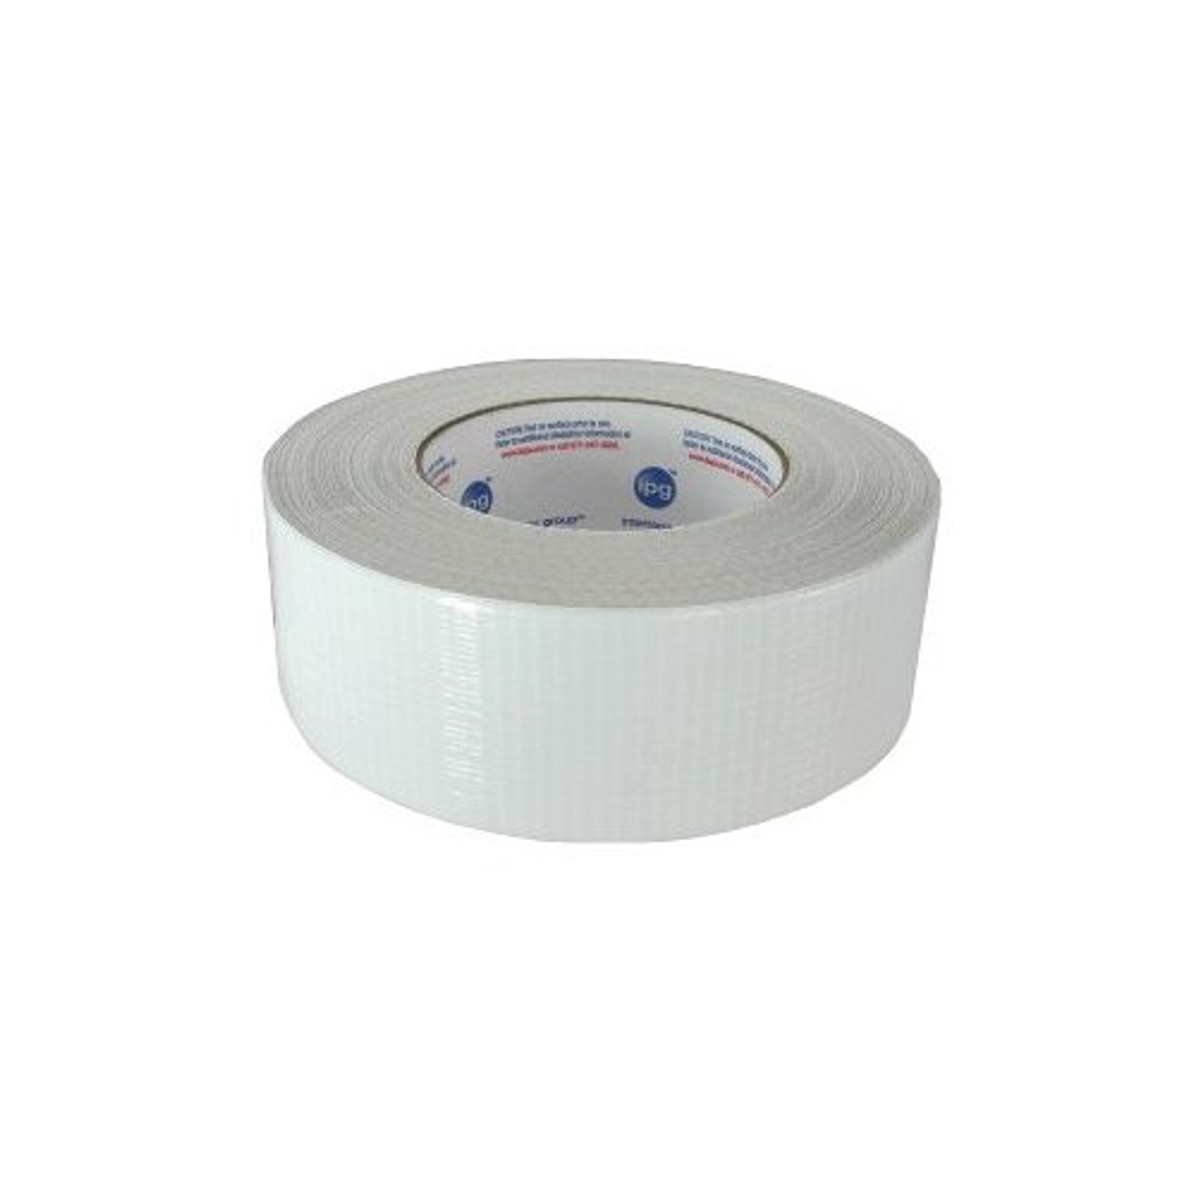 3m 2 inch wide post-it tape 36 yards white mask 06951